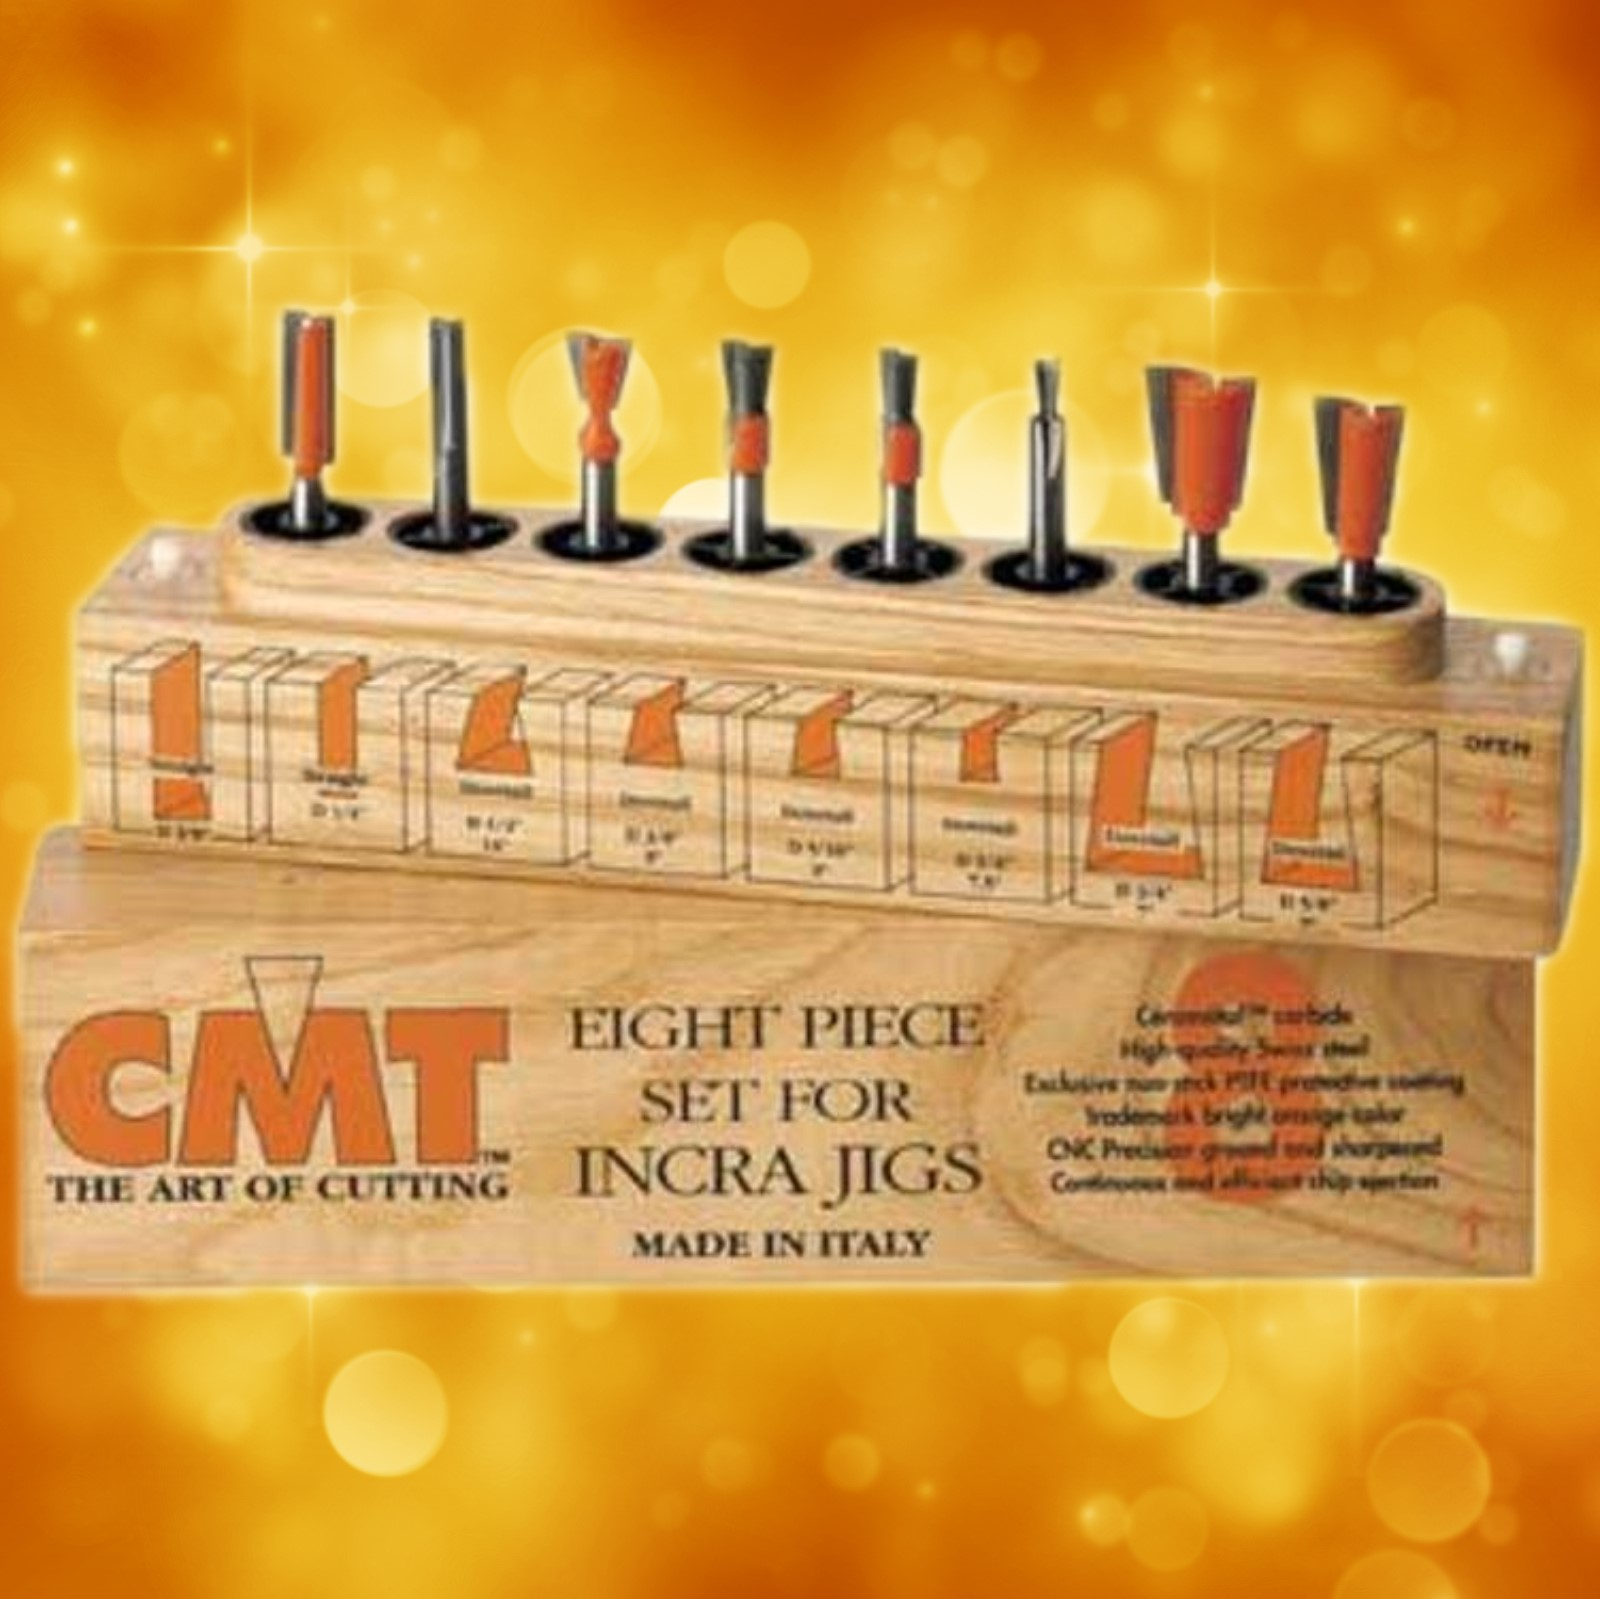 "CMT 8-Piece Dovetail & Straight Bit Set 1/2"" shanks for INCRA & JOINTECH JIG 800.501.11"